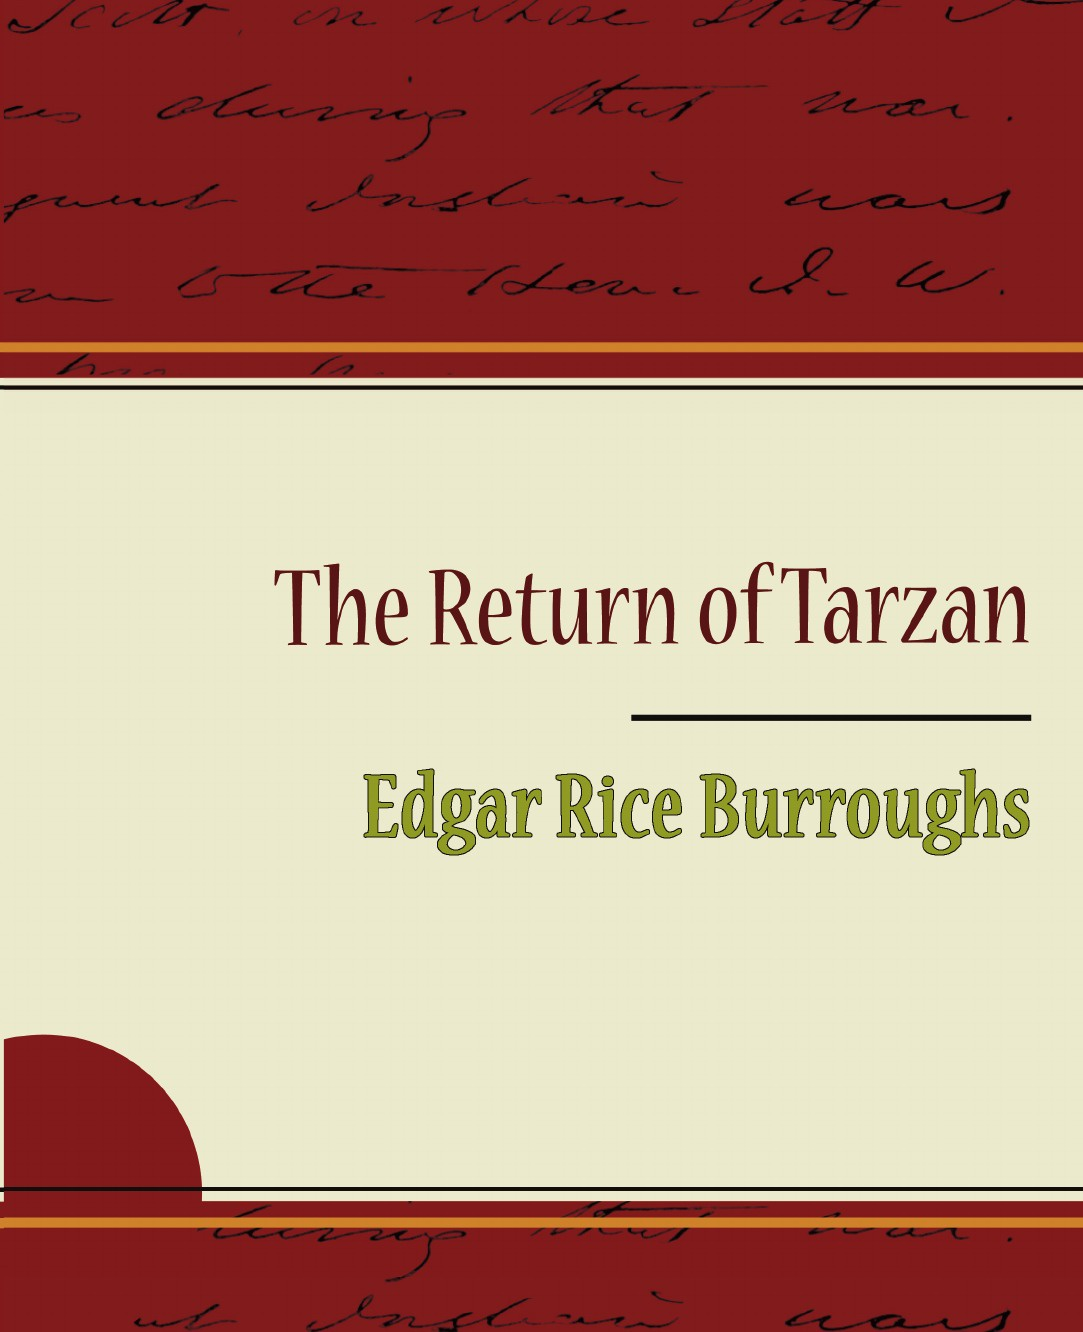 Edgar Rice Burroughs The Return of Tarzan edgar rice burroughs the war chief